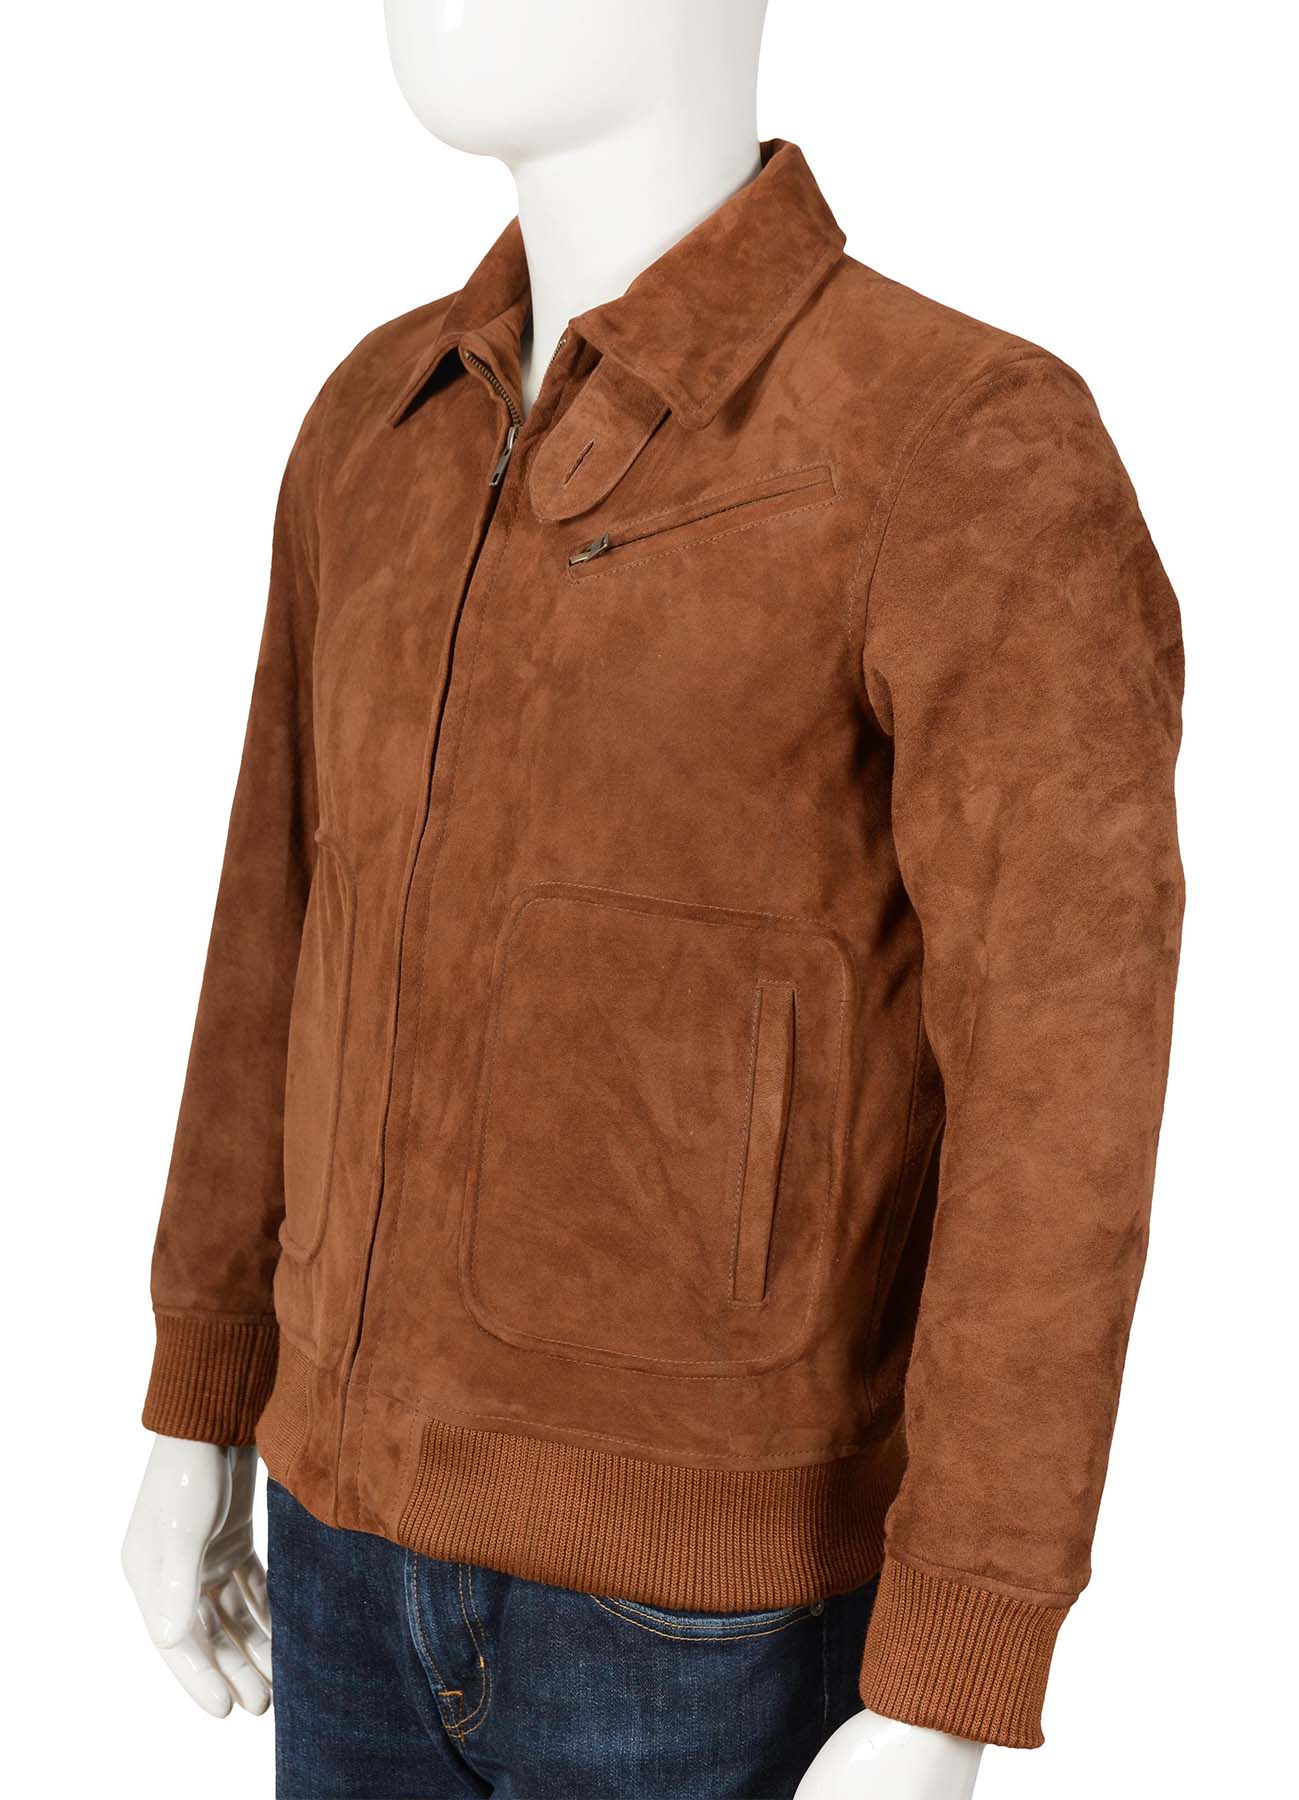 Brown Suede Leather Jacket With Shirt Style Collar